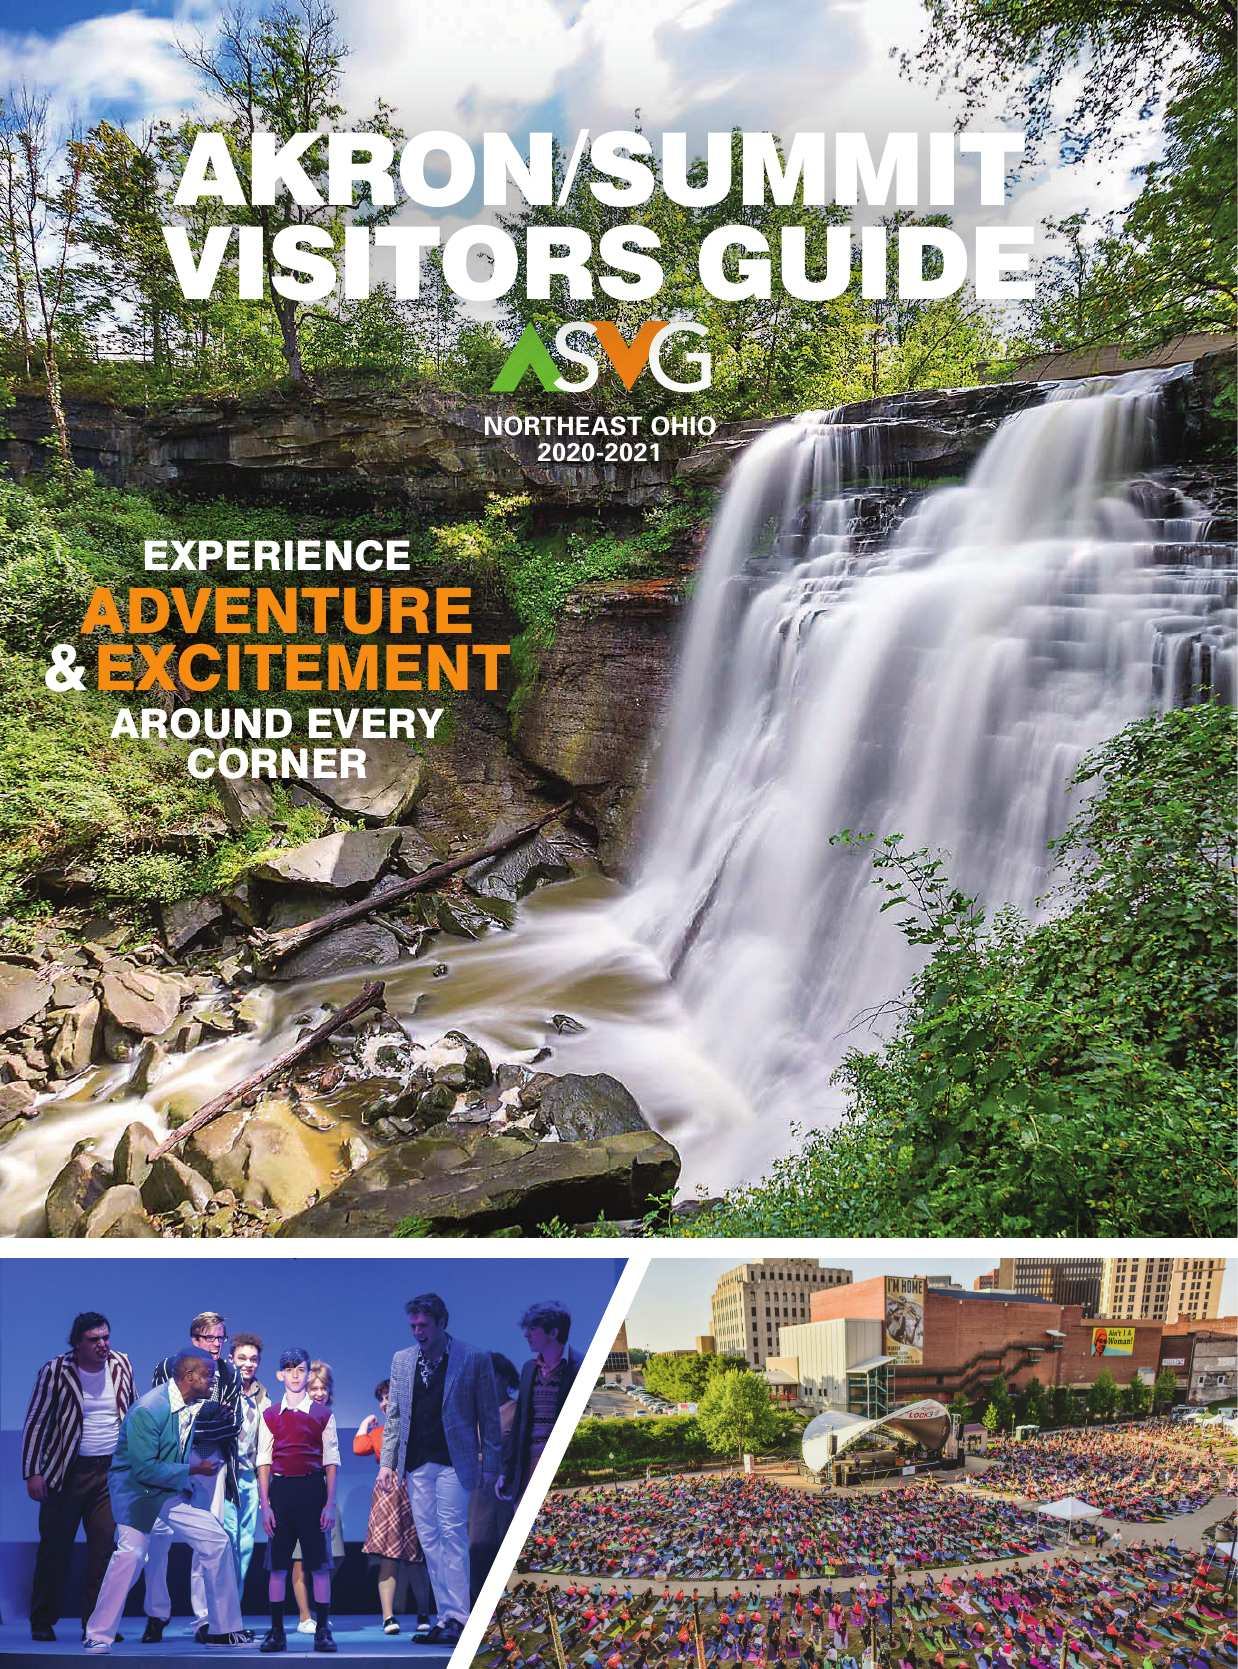 Akron/Summit Visitors Guide